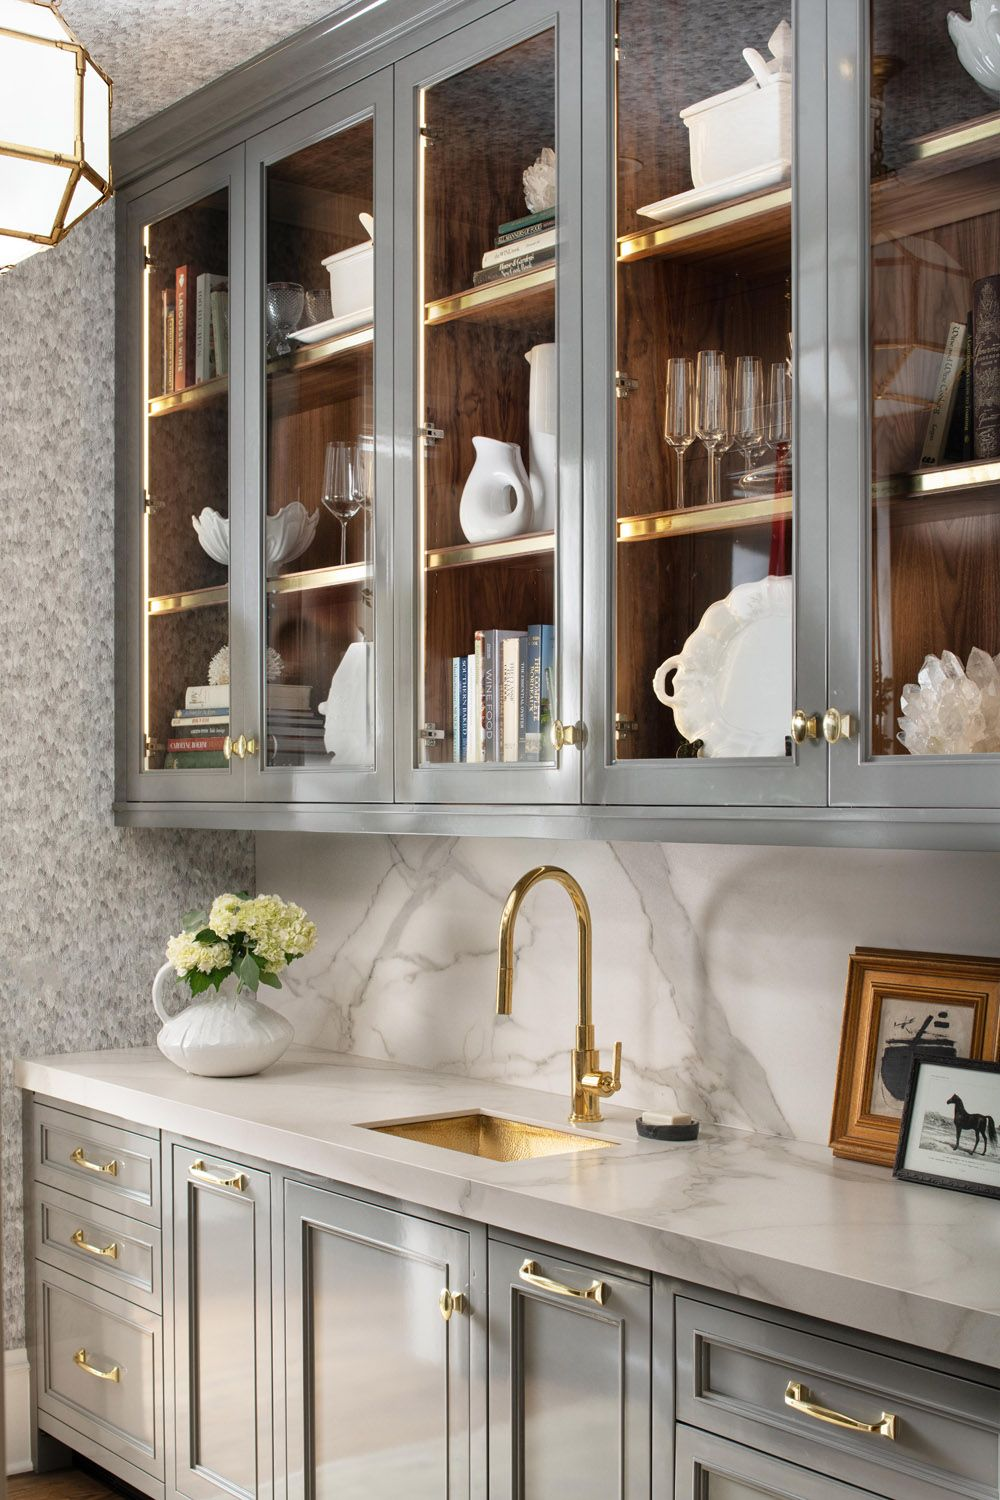 7 Different Ways to Incorporate Stone & Porcelain Into Your Space